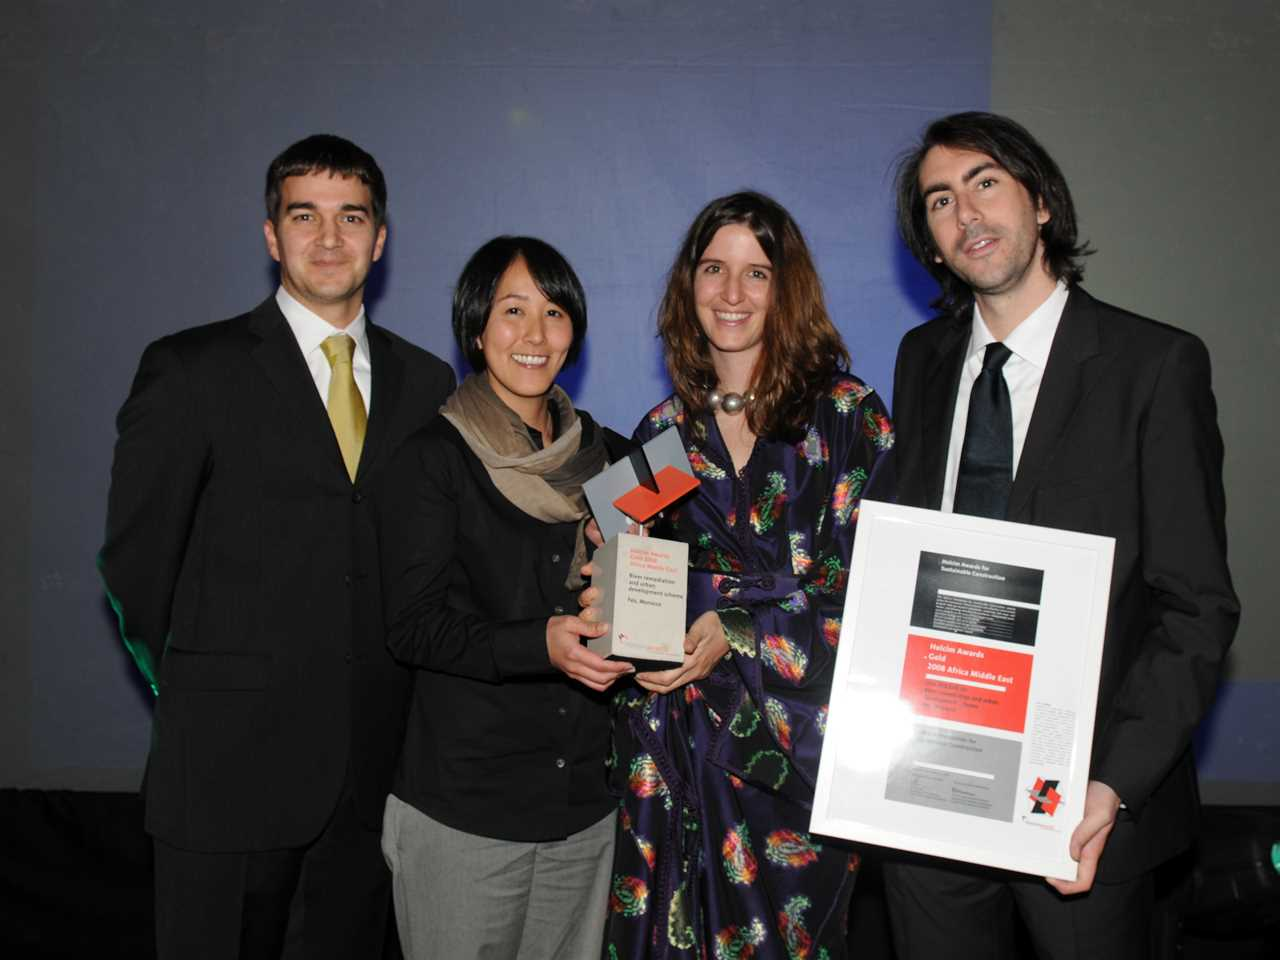 Winning team members Holcim Awards Gold 2008 (l-r): John Ferri, Takako Tajima, Aziza Chaouni, Dan …